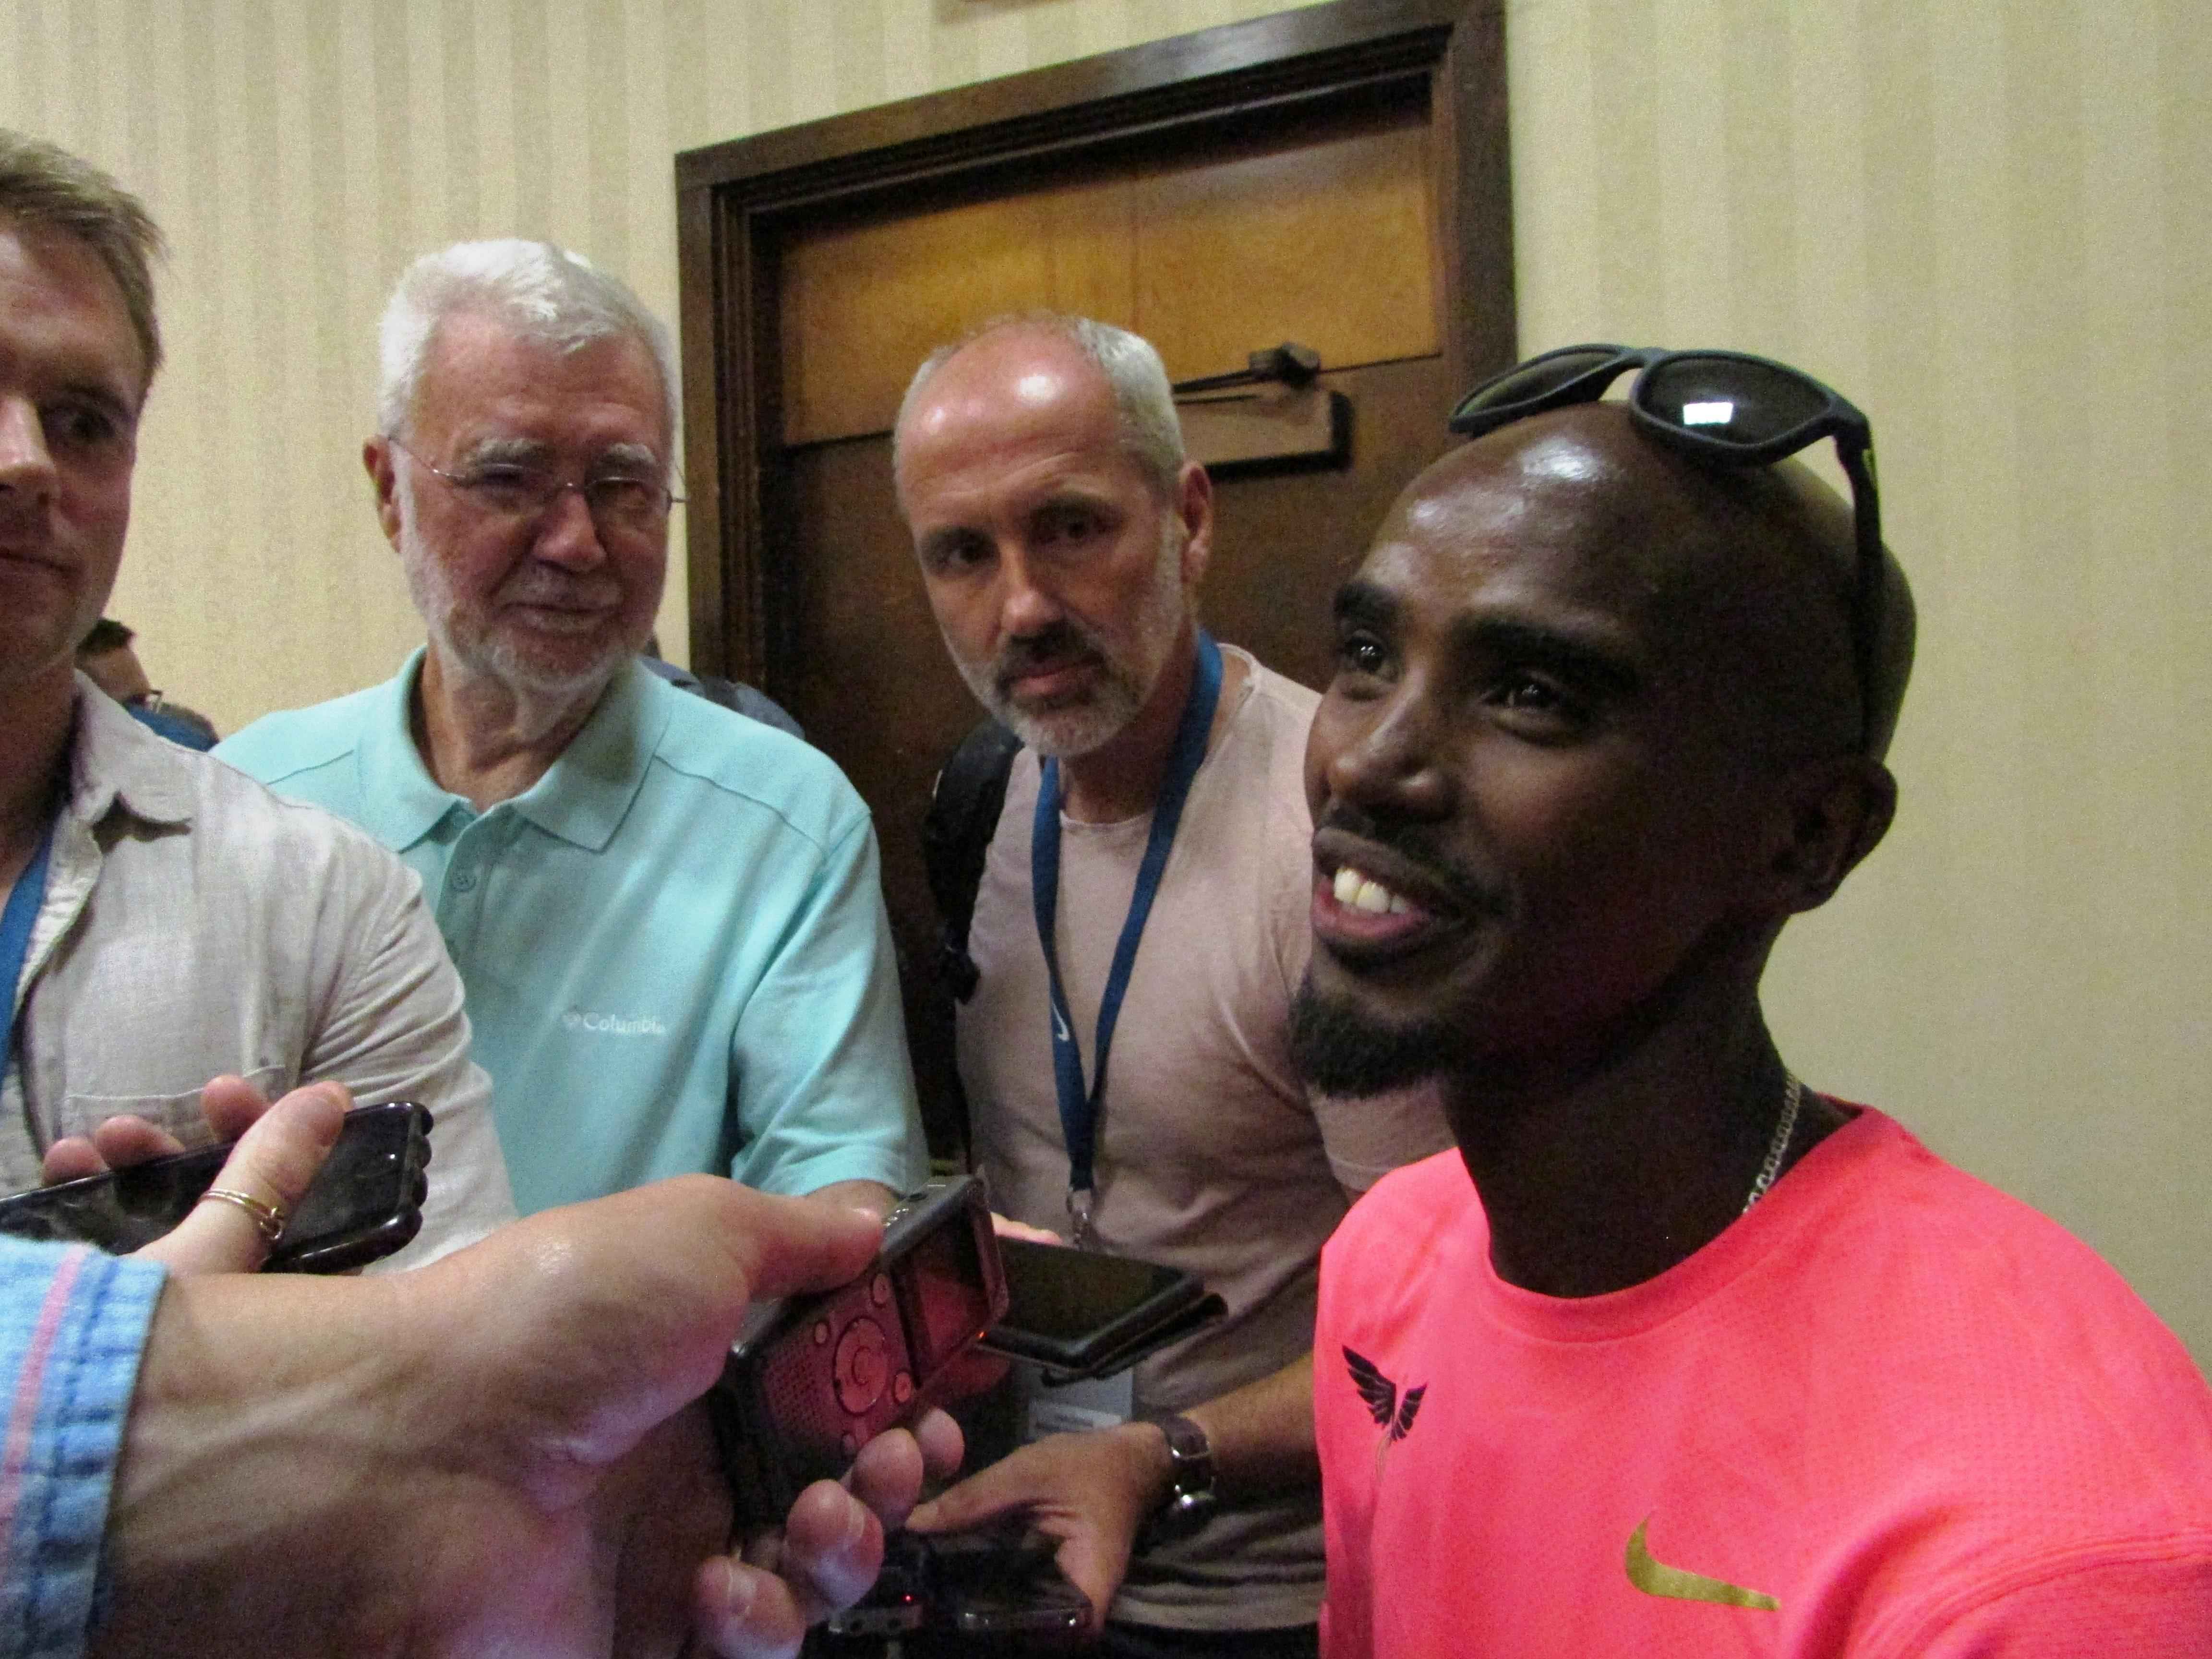 Olympic gold medalist Mo Farah speaks to reporters Friday, May 26, 2017, in advance of the Prefontaine Classic track meet in Eugene, Ore. Farah plans to run in the 5,000 meters. (AP Photo/Anne M. Peterson)